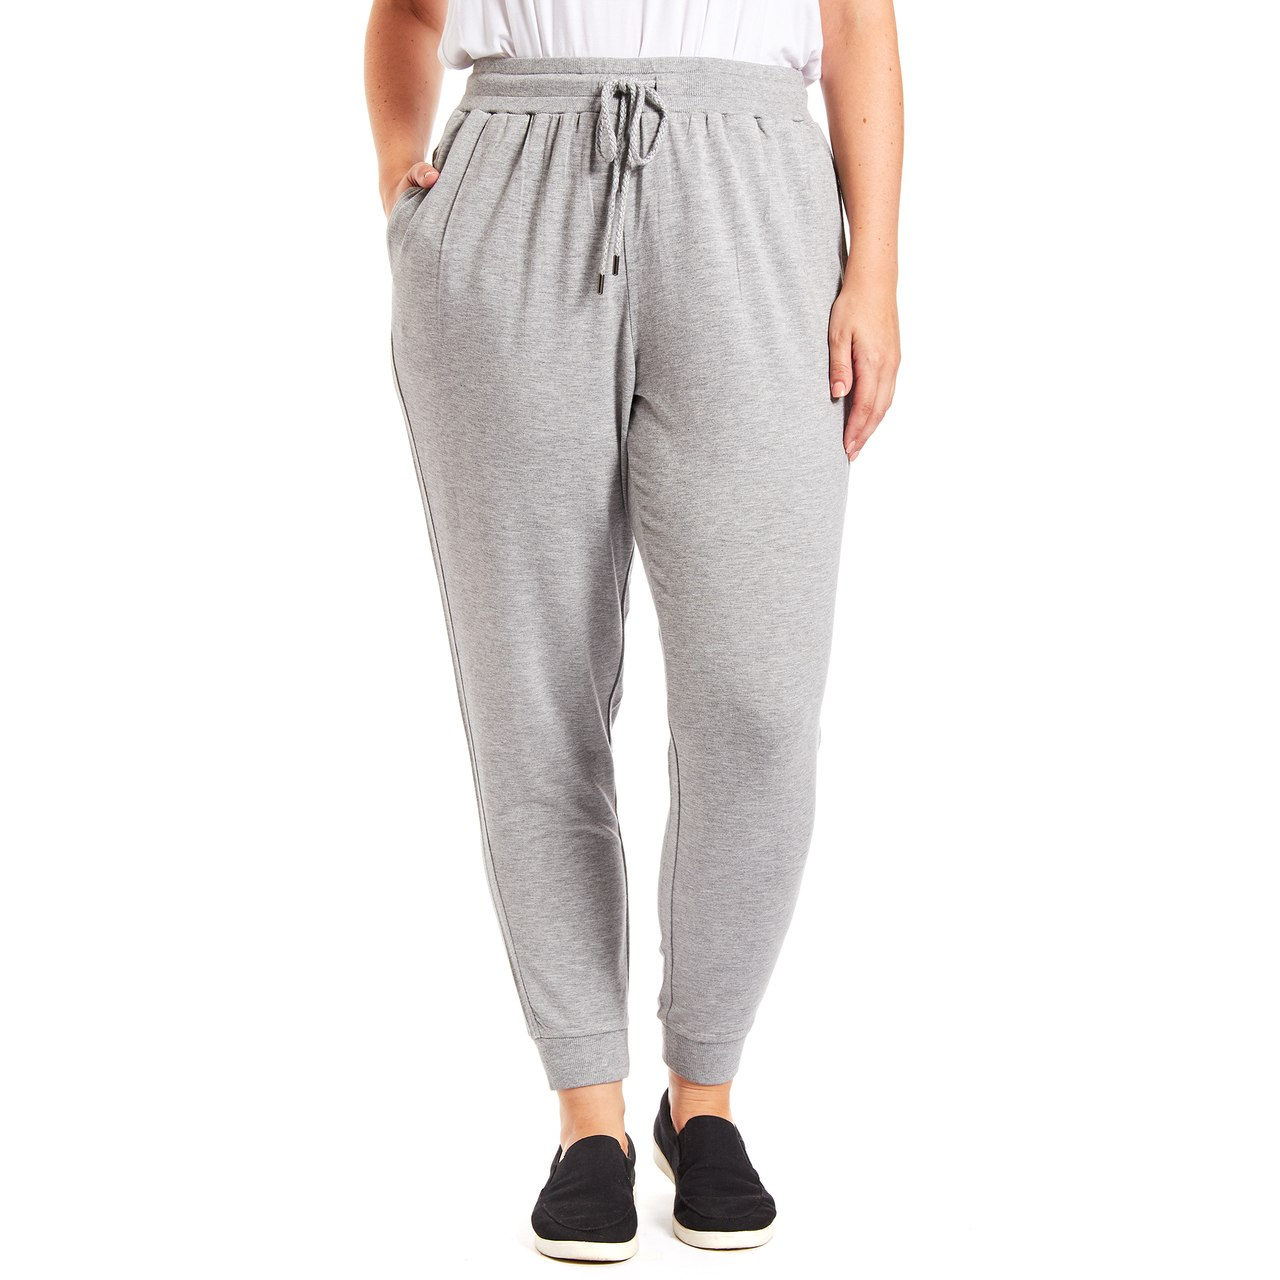 Curvy Drawstring Jogger Pant In Heather Grey